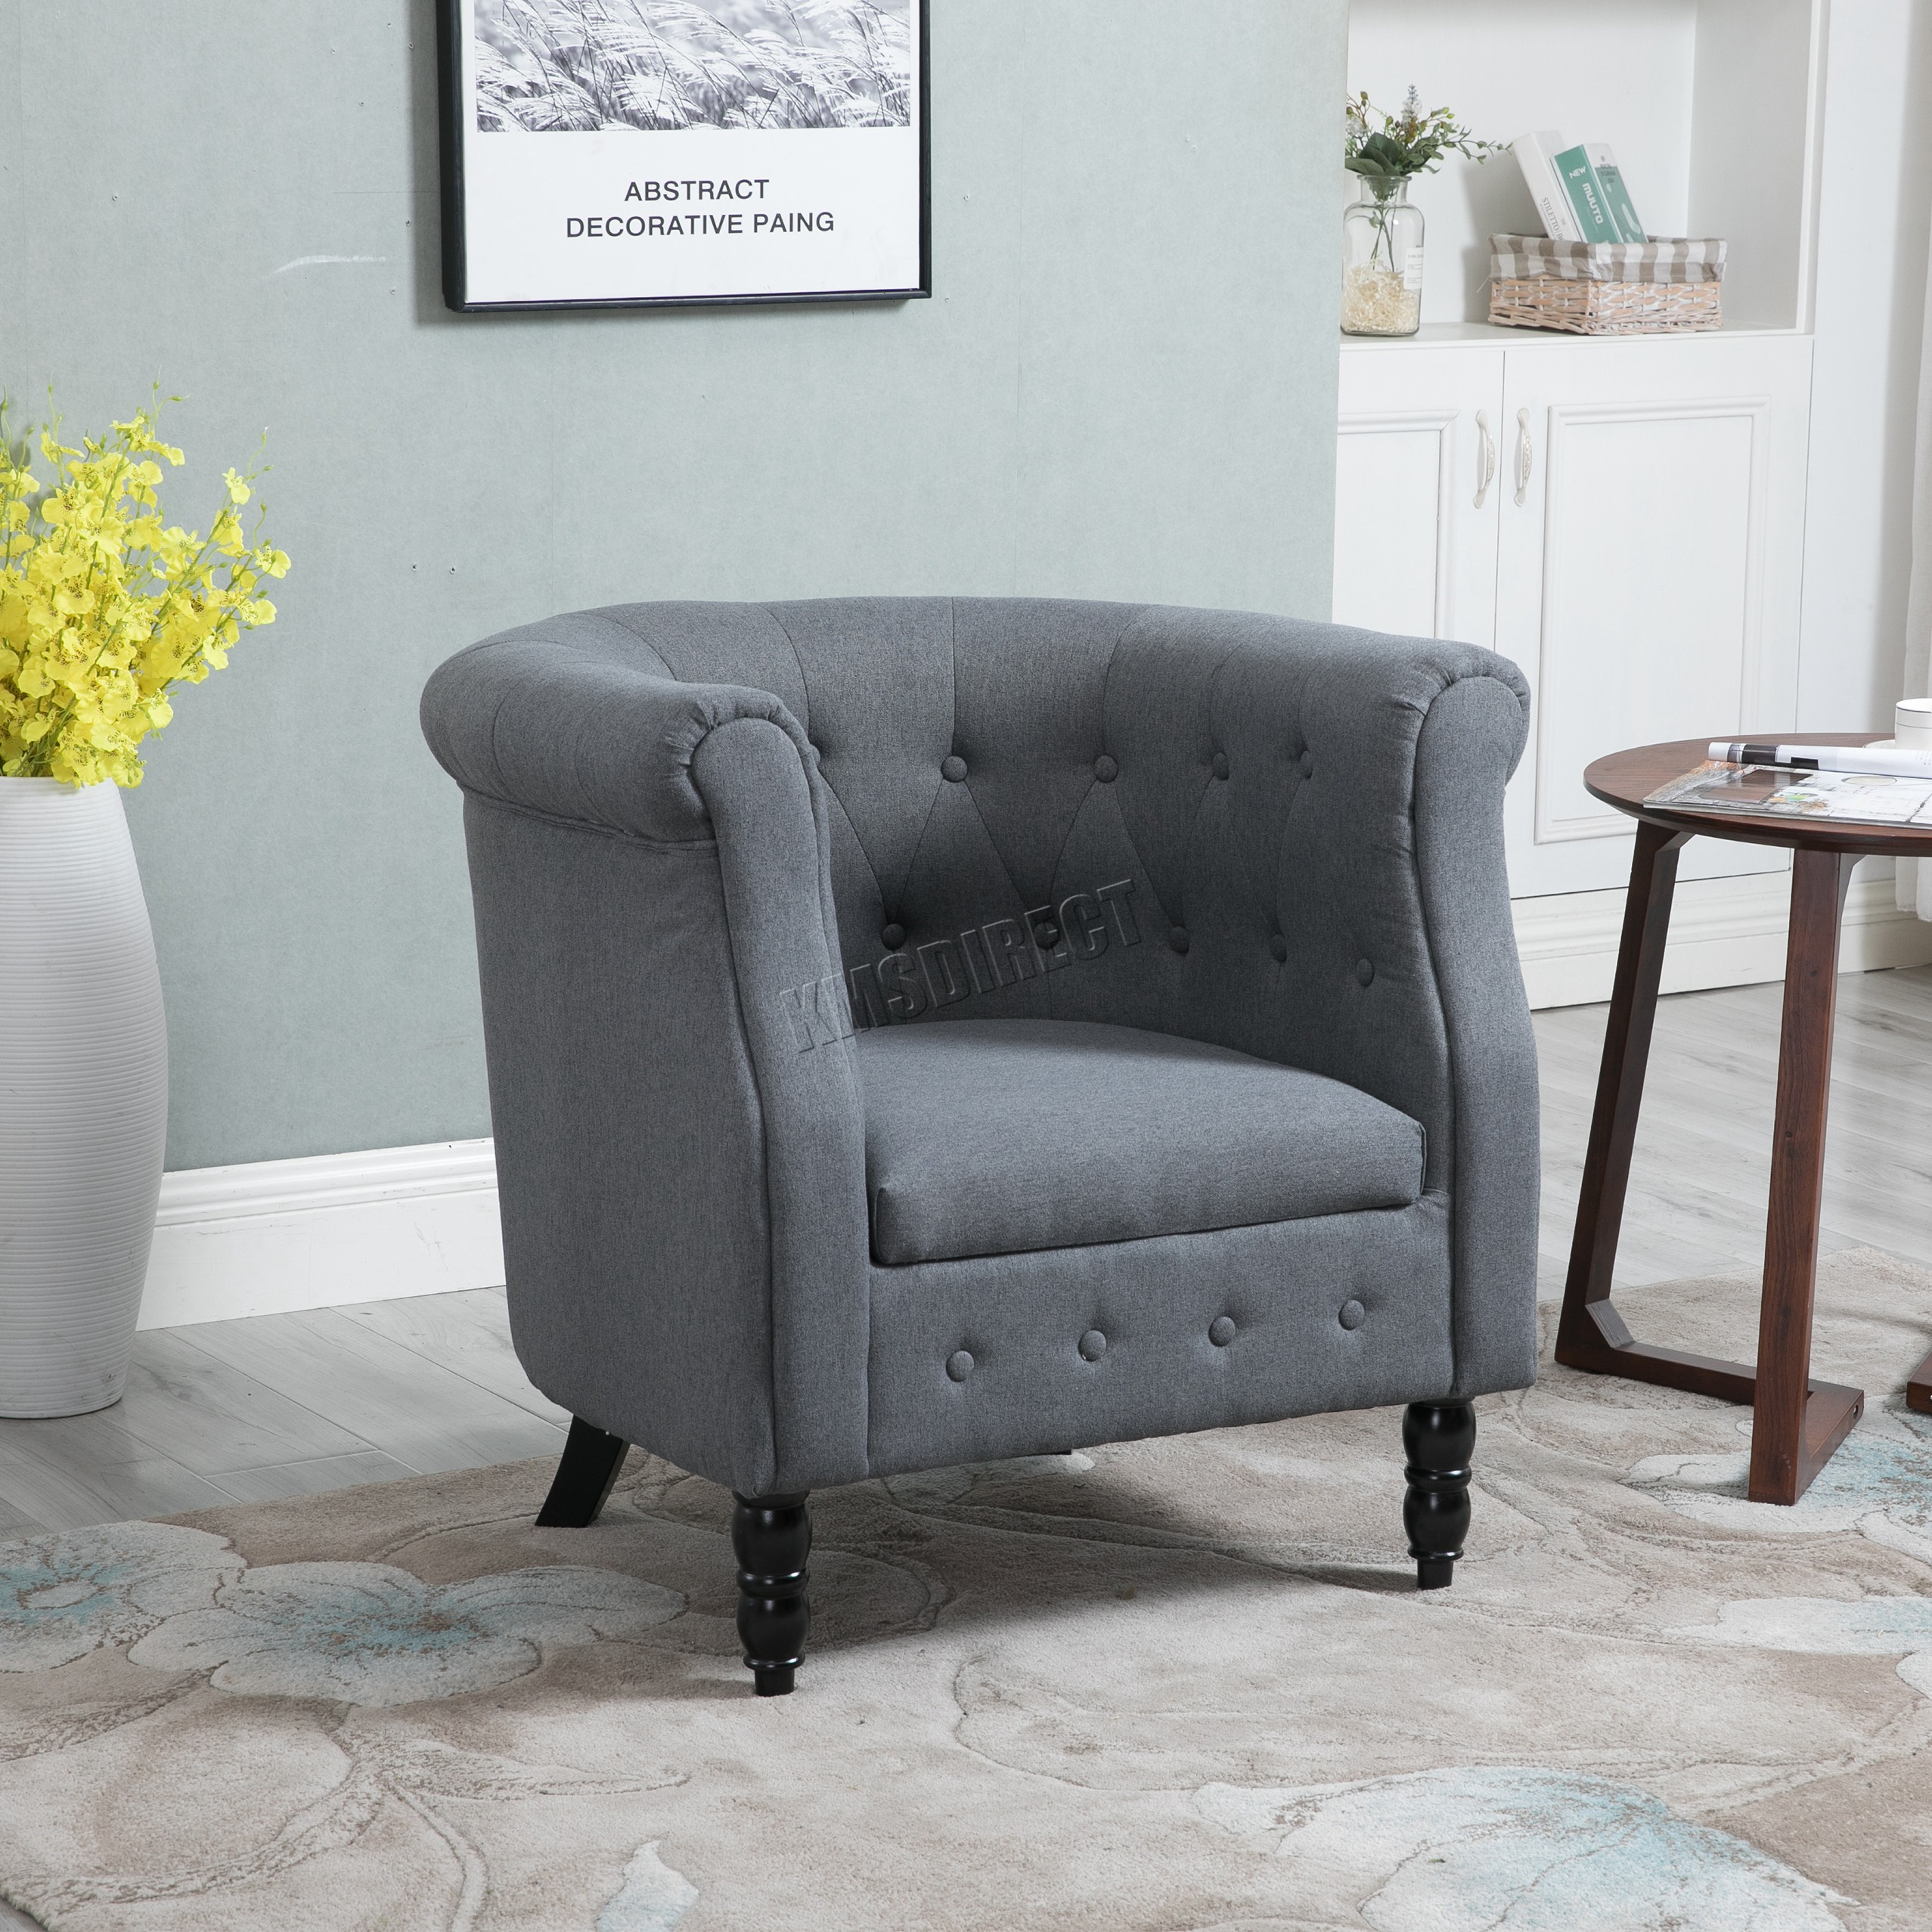 Cocktailsessel Vintage Westwood Vintage Linen Fabric Tub Chair Armchair Dining